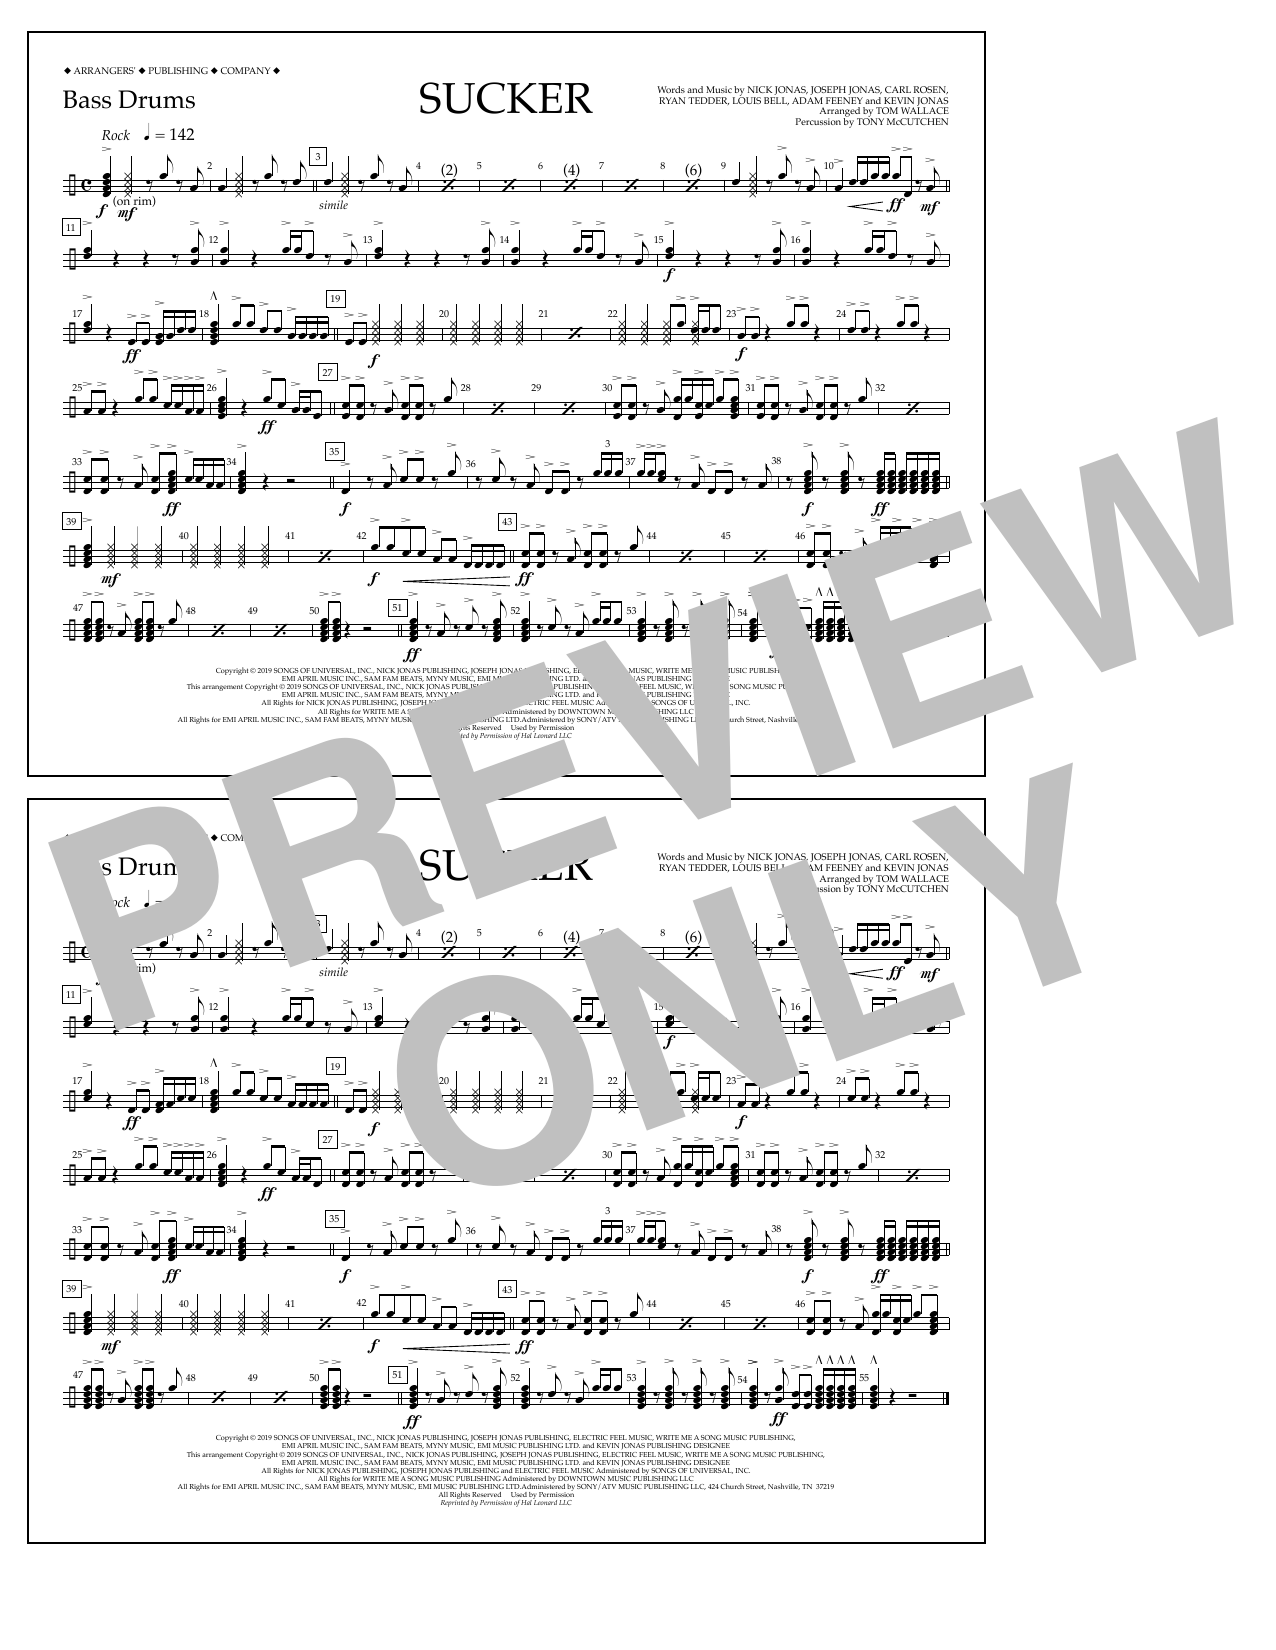 Jonas Brothers Sucker (arr. Tom Wallace) - Bass Drums sheet music notes and chords. Download Printable PDF.